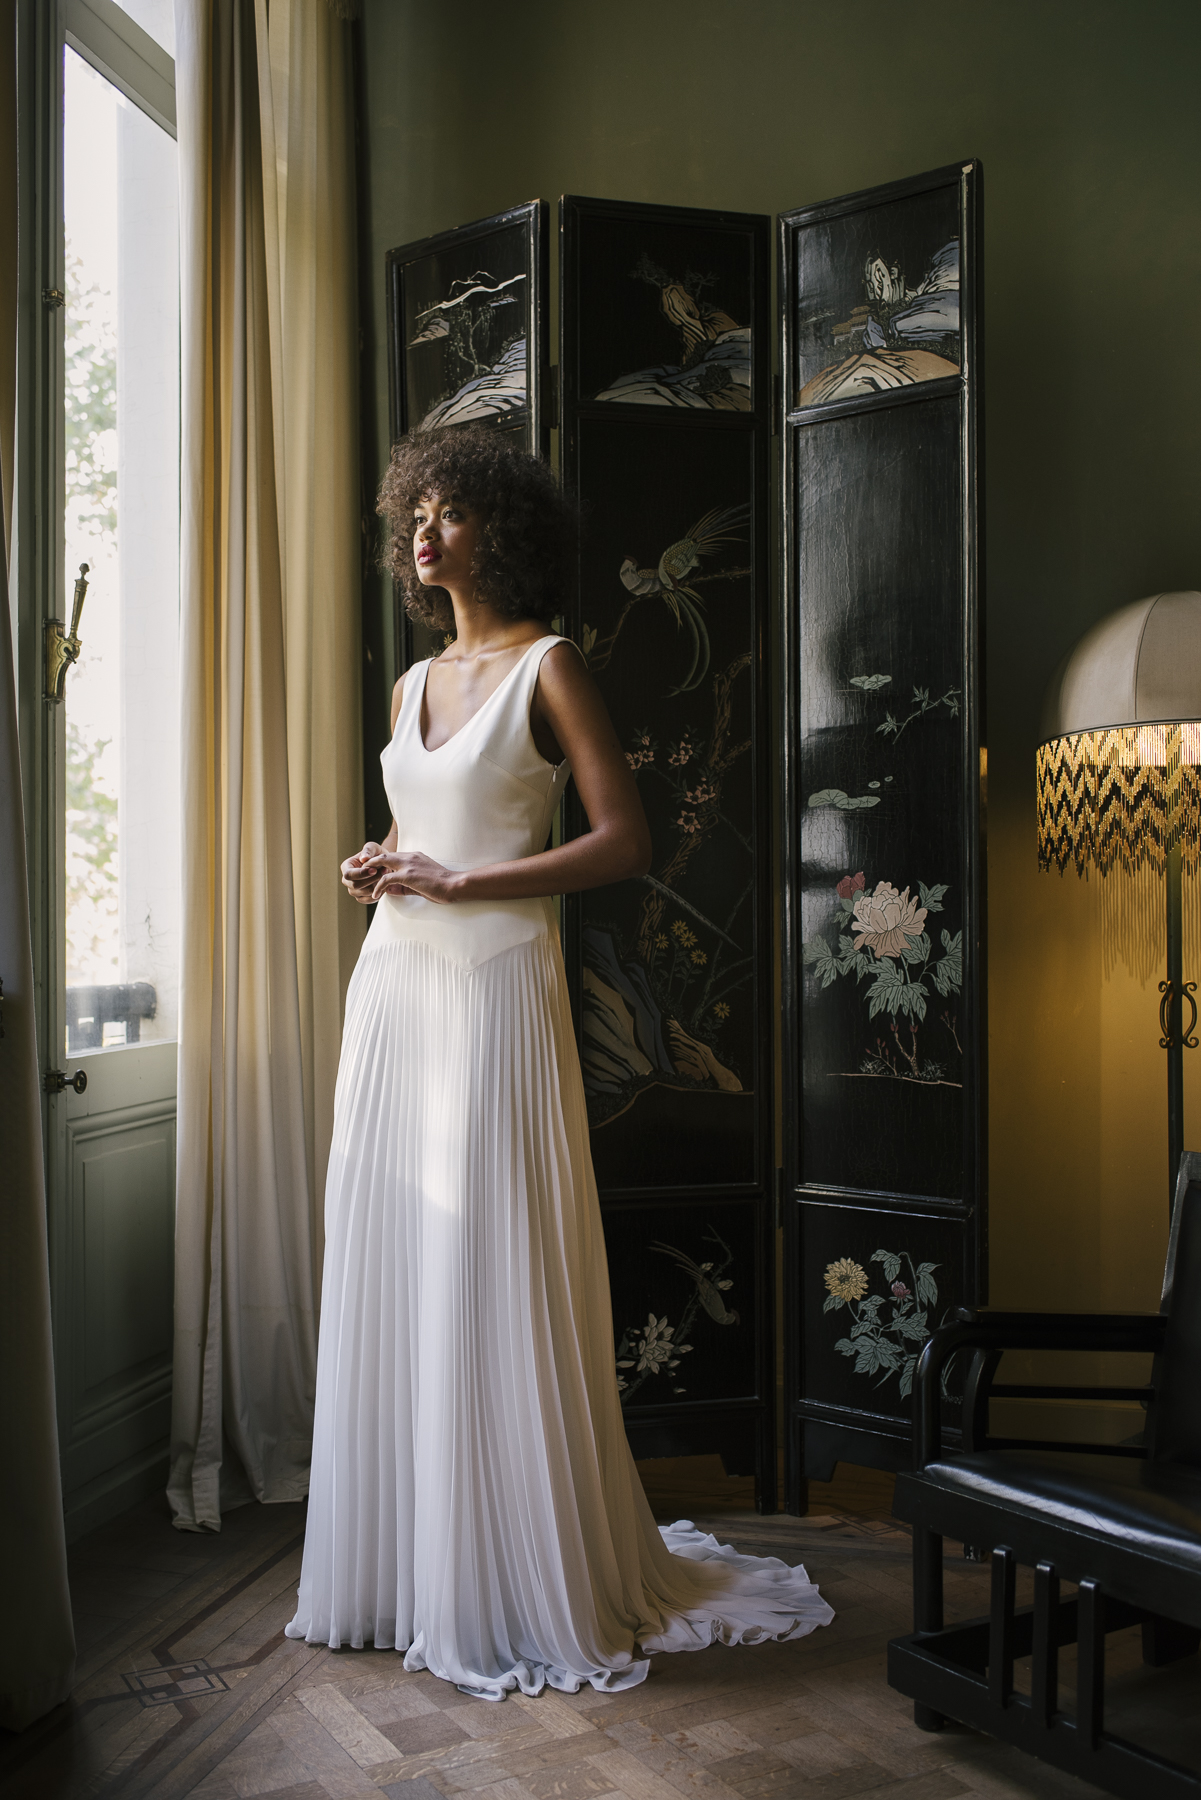 valentine-avoh-robe-mariee-grace-wedding-dress-bruxelles-photo-elodie-timmermans-1.jpg